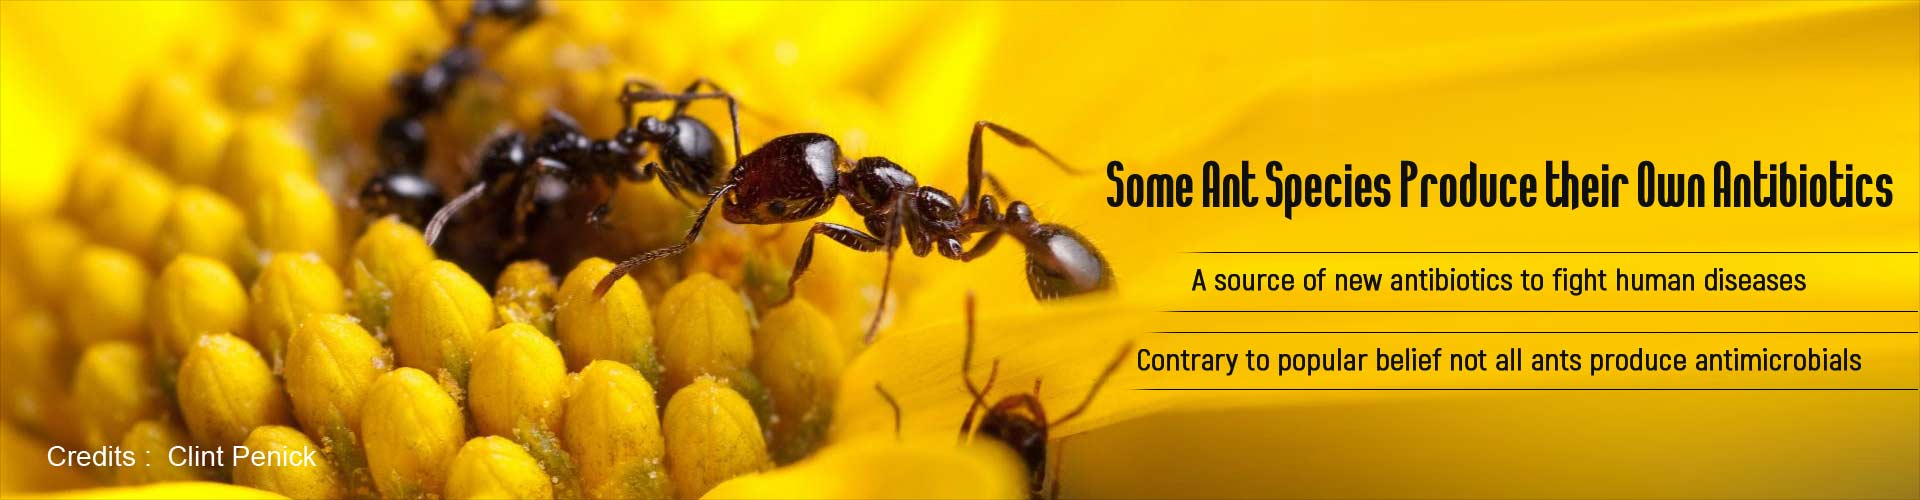 Some ants species produce their own antibiotics